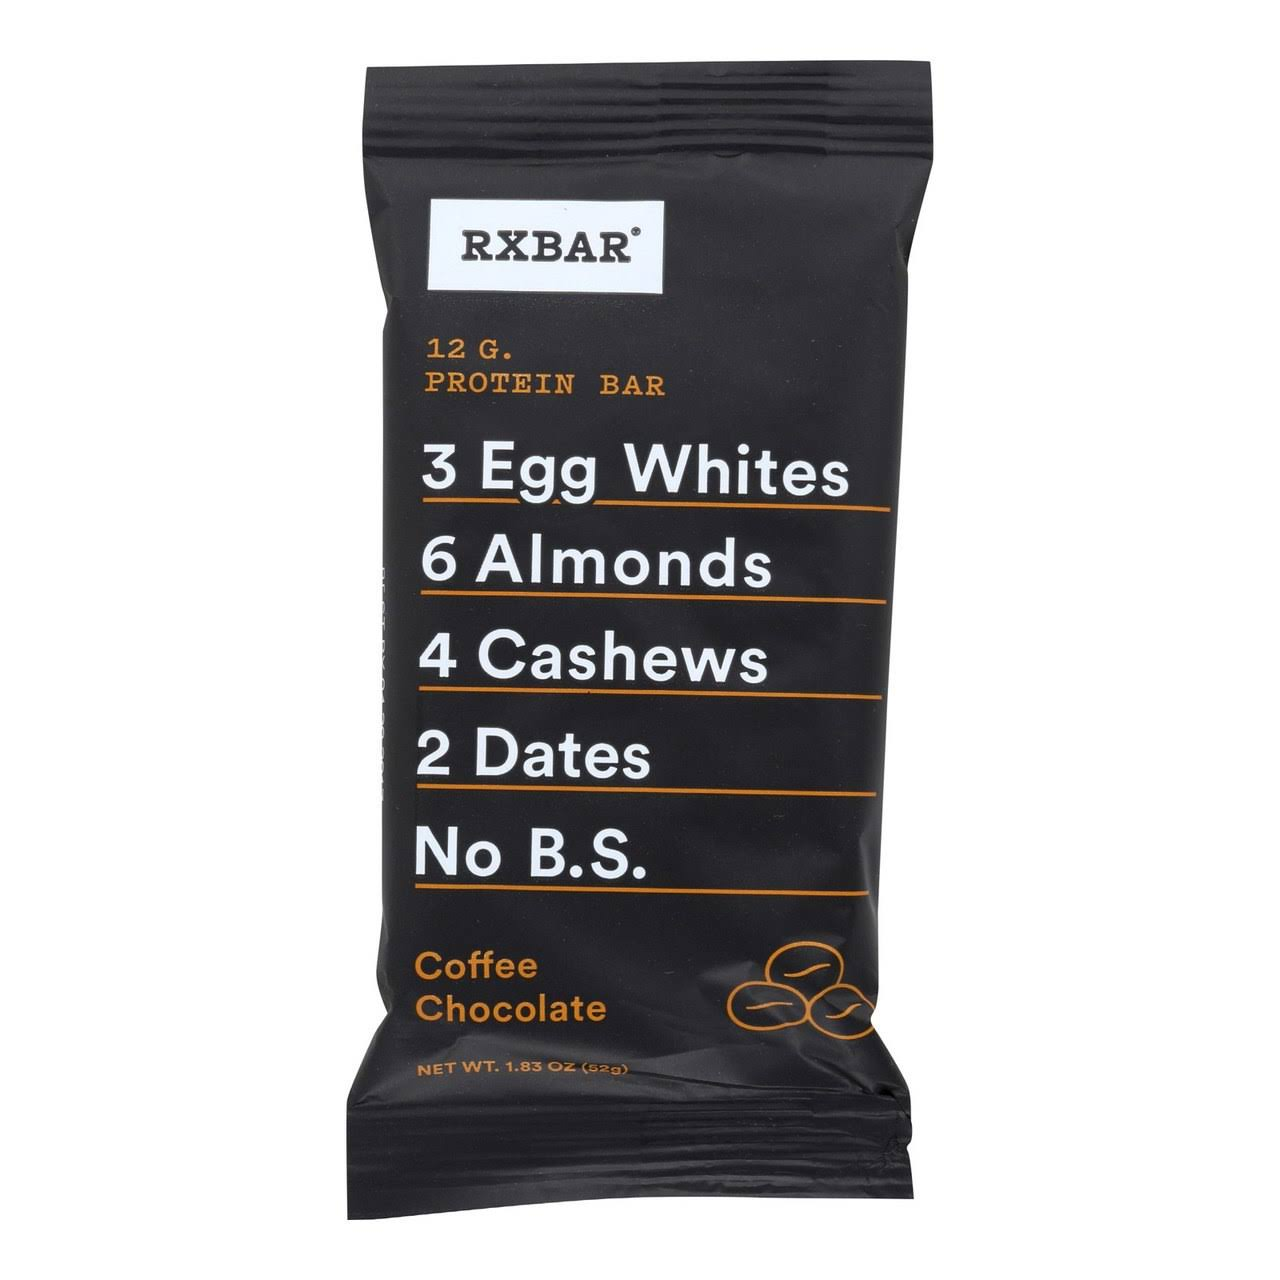 Rxbar Protein Bar - Coffee Chocolate, 12 Bars, 21.96oz